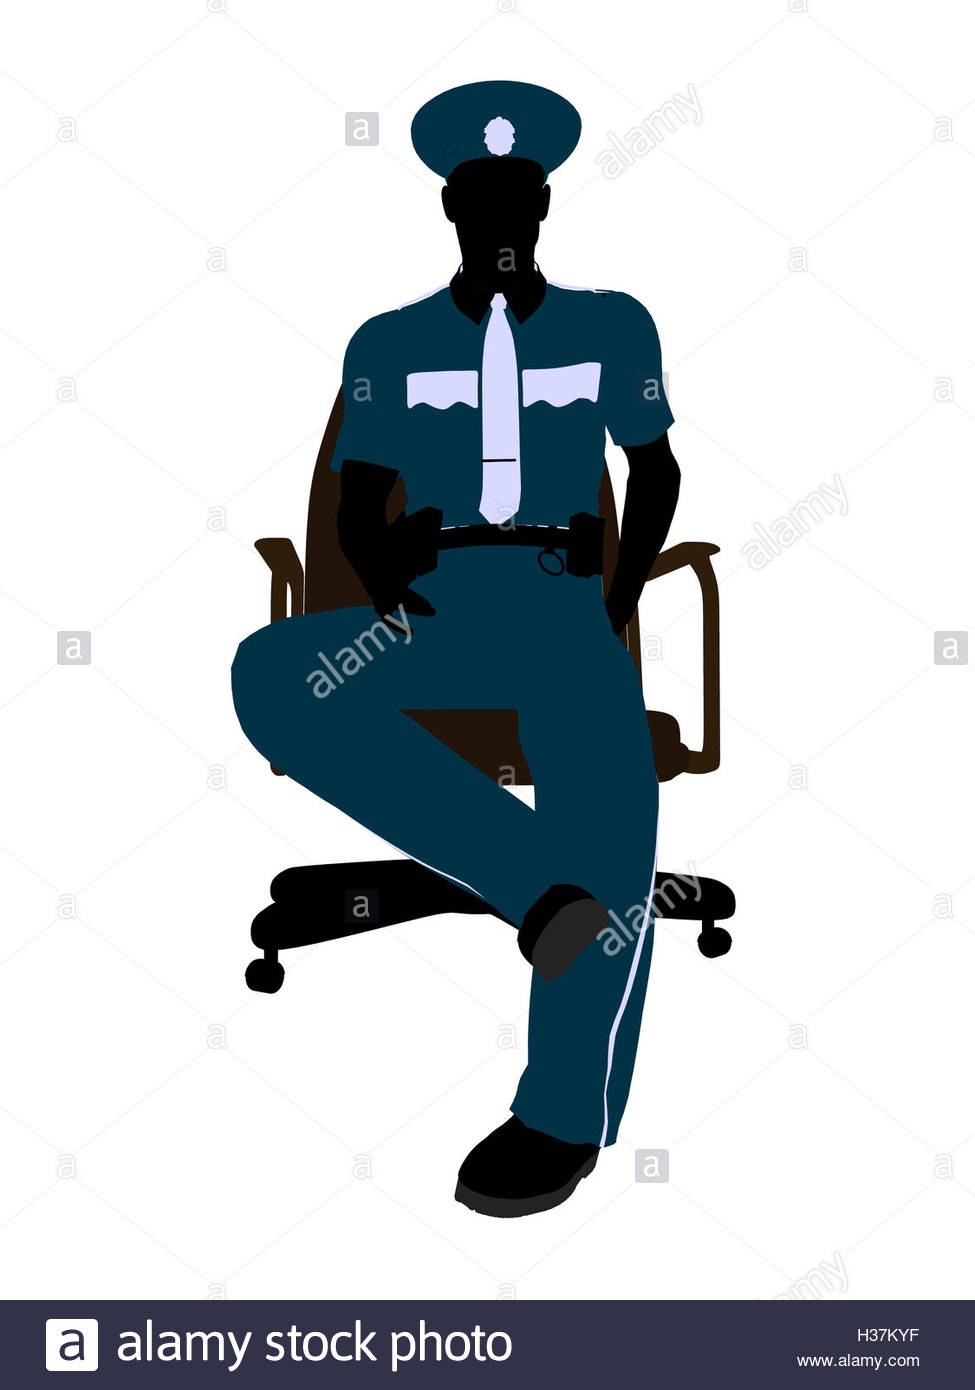 975x1390 Male Police Officer Sitting In A Chair Illustration Silhouette